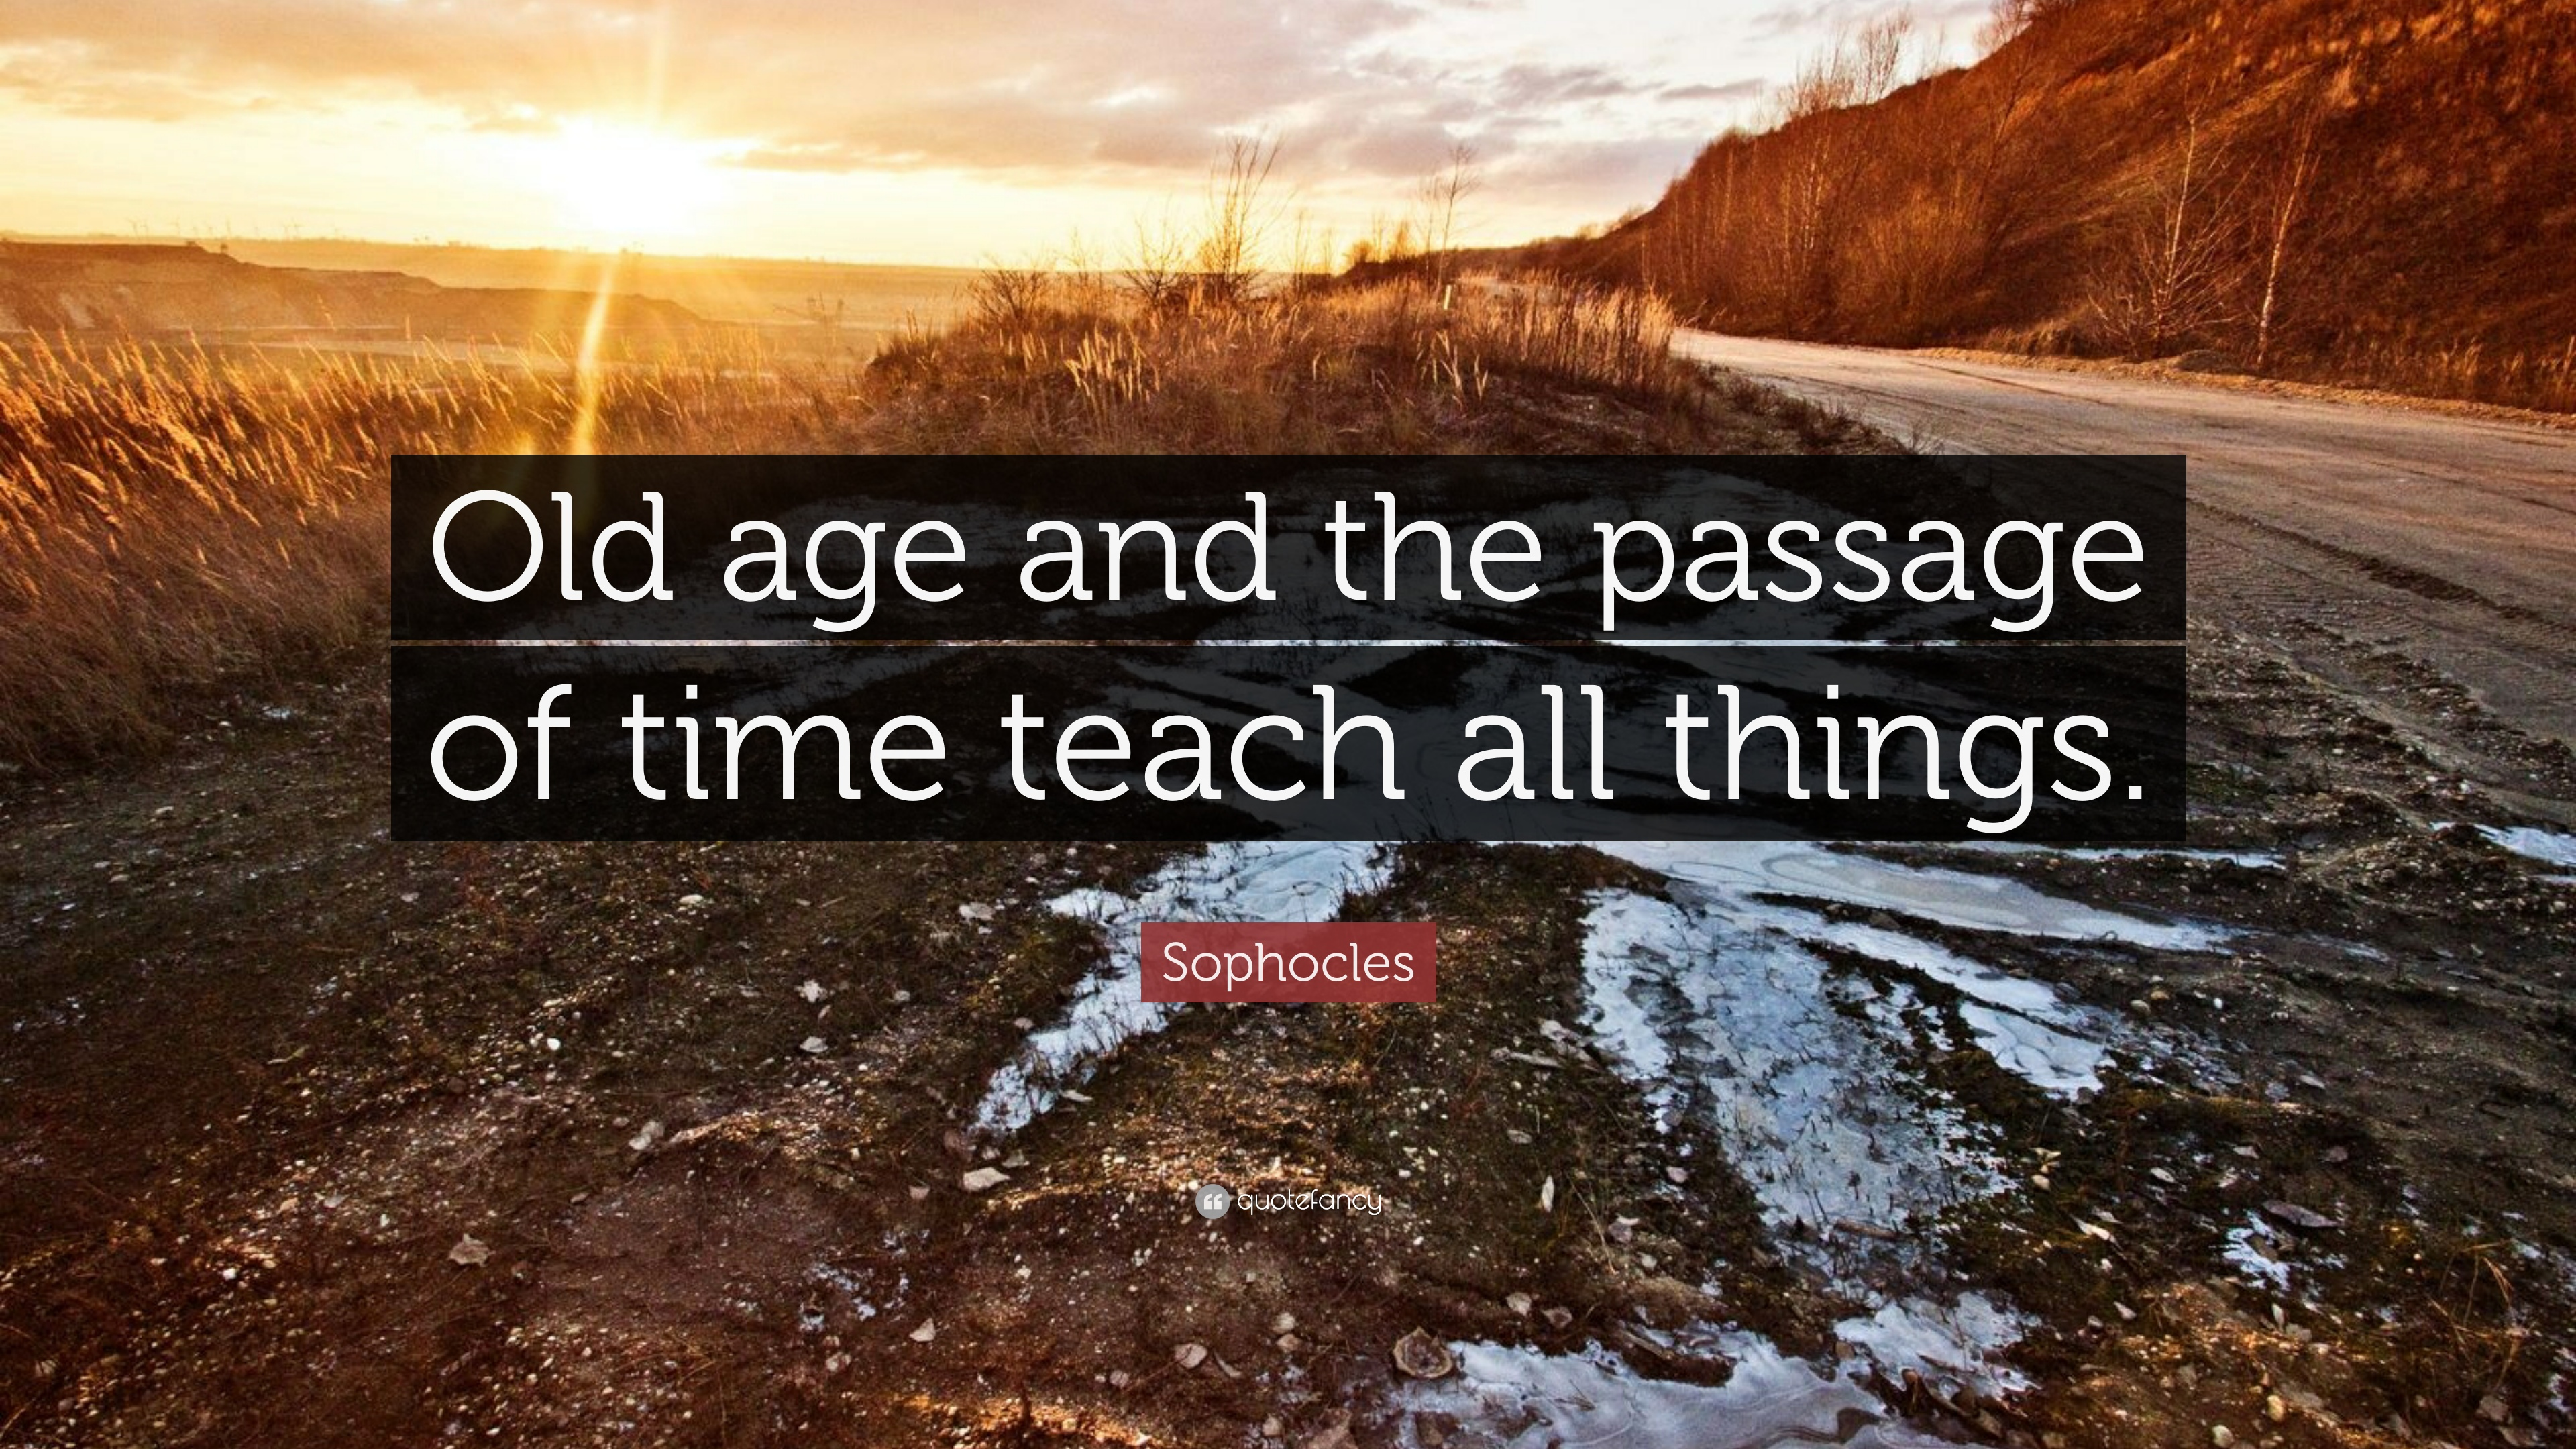 Sophocles Quote Old Age And The Passage Of Time Teach All Things